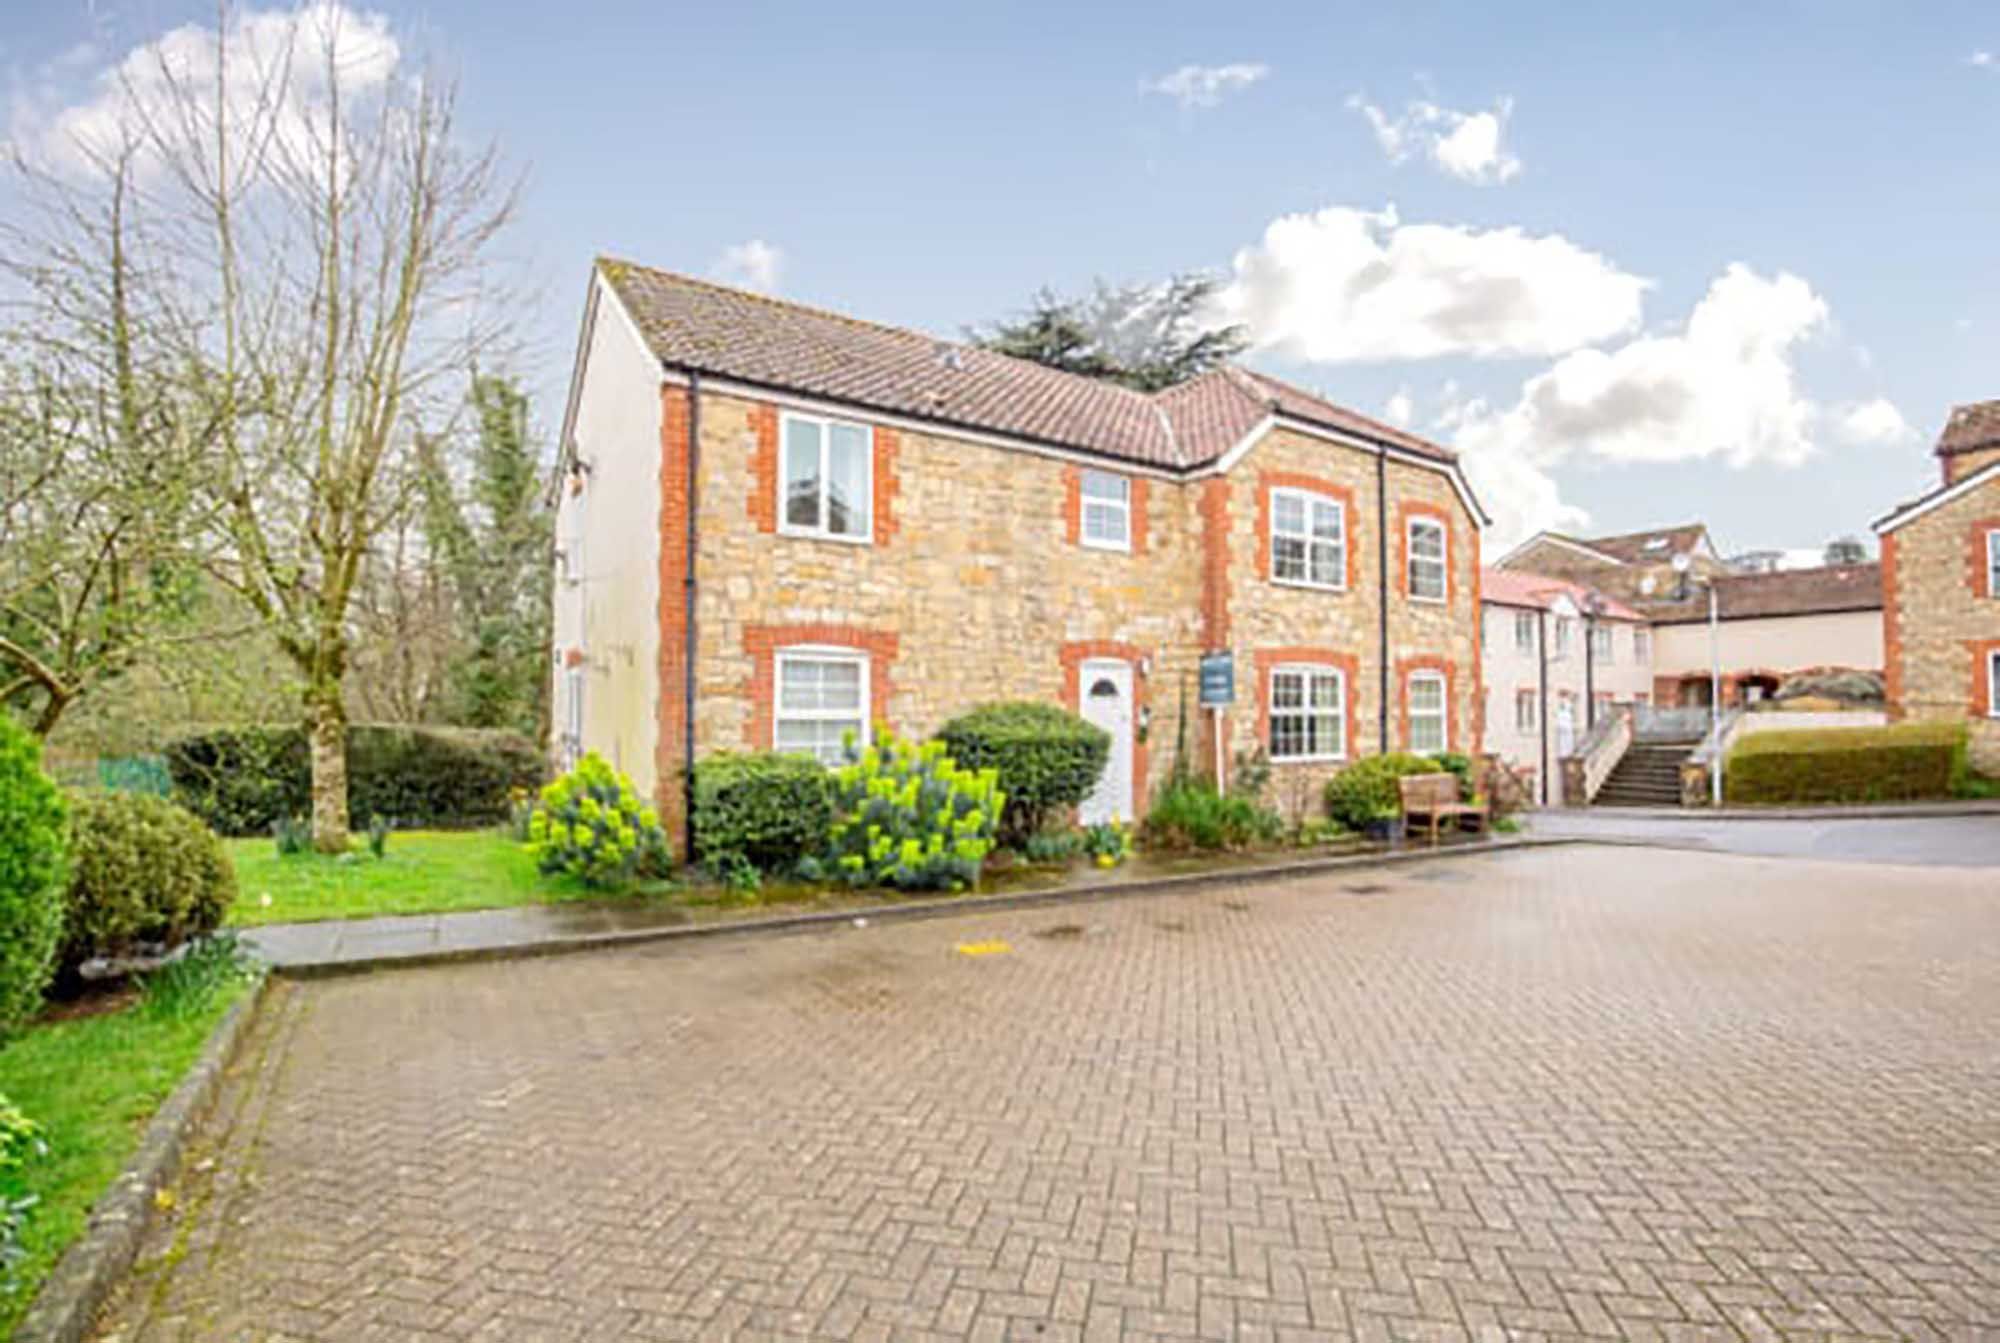 Exciting investment opportunity in the heart of Bruton